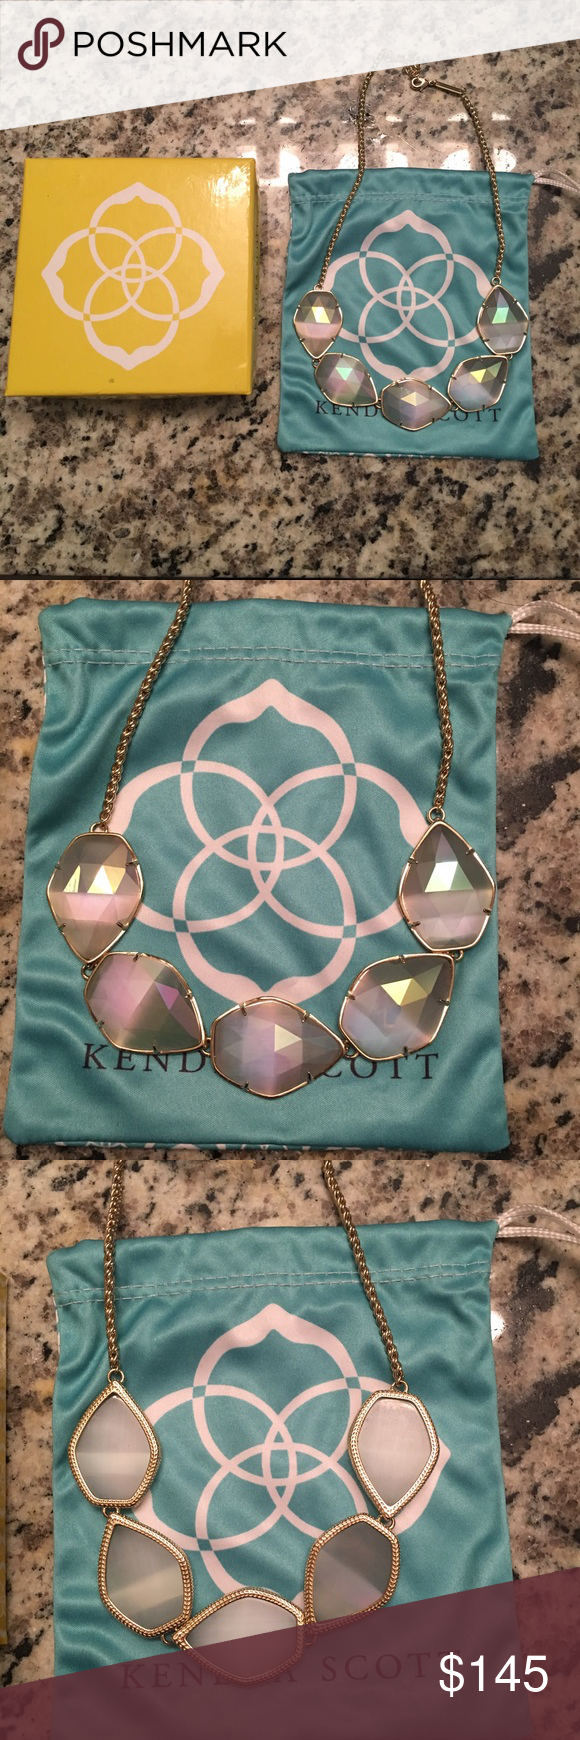 Kendra Scott Connely necklace iridescent slate Worn once perfect condition Kendra Scott Connely necklace. Super rare find! Comes with box and dustbag. Kendra Scott Jewelry Necklaces